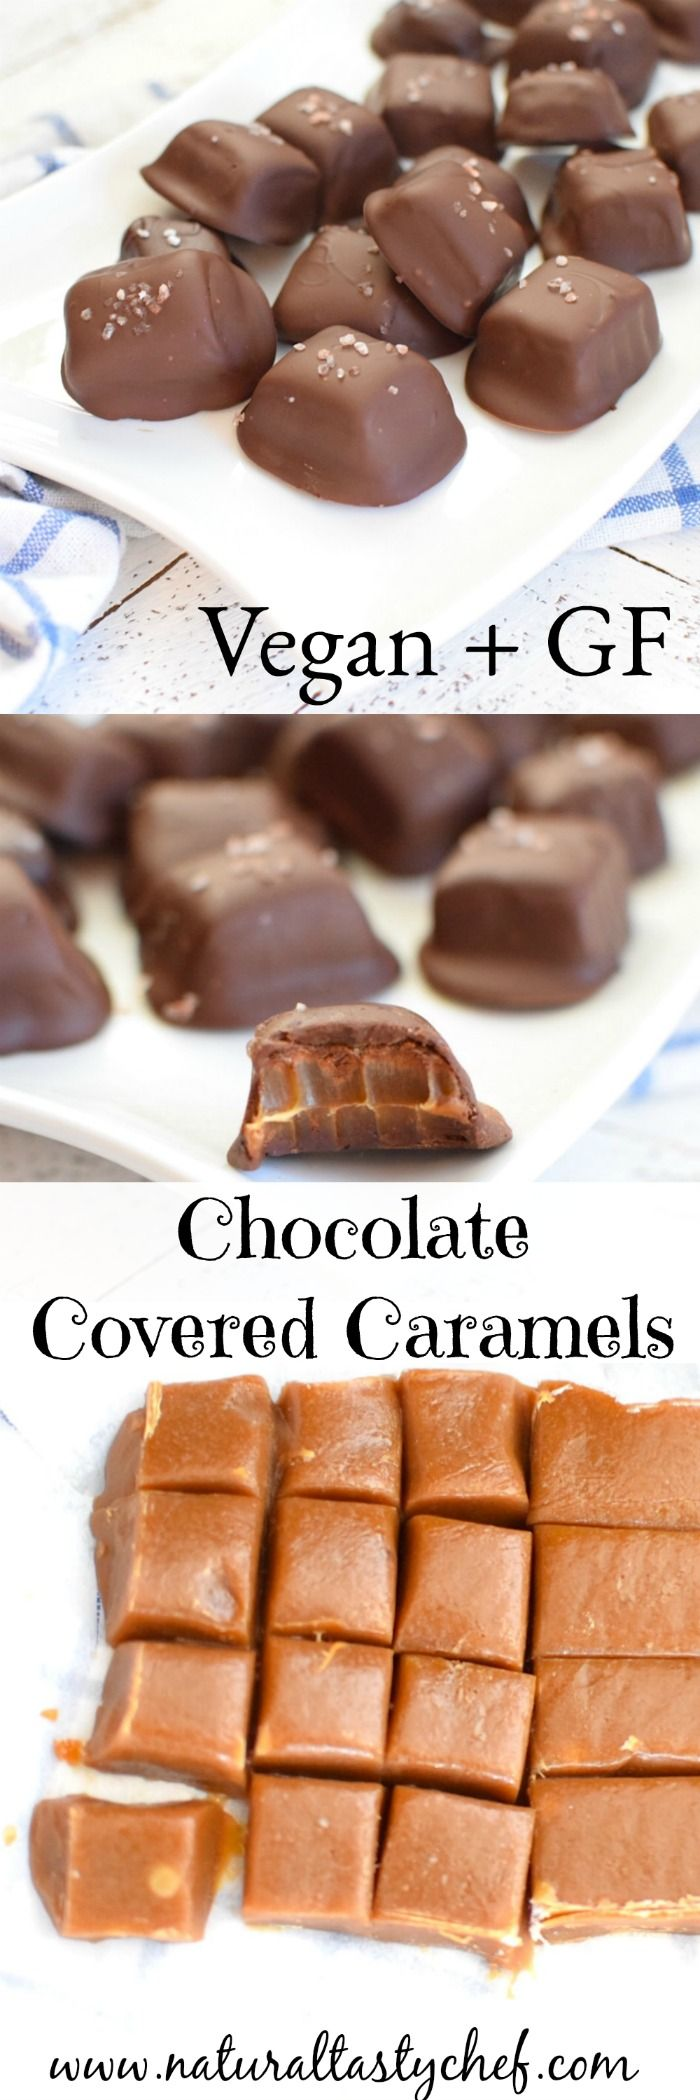 Vegan Sea Salted Chocolate Caramels.